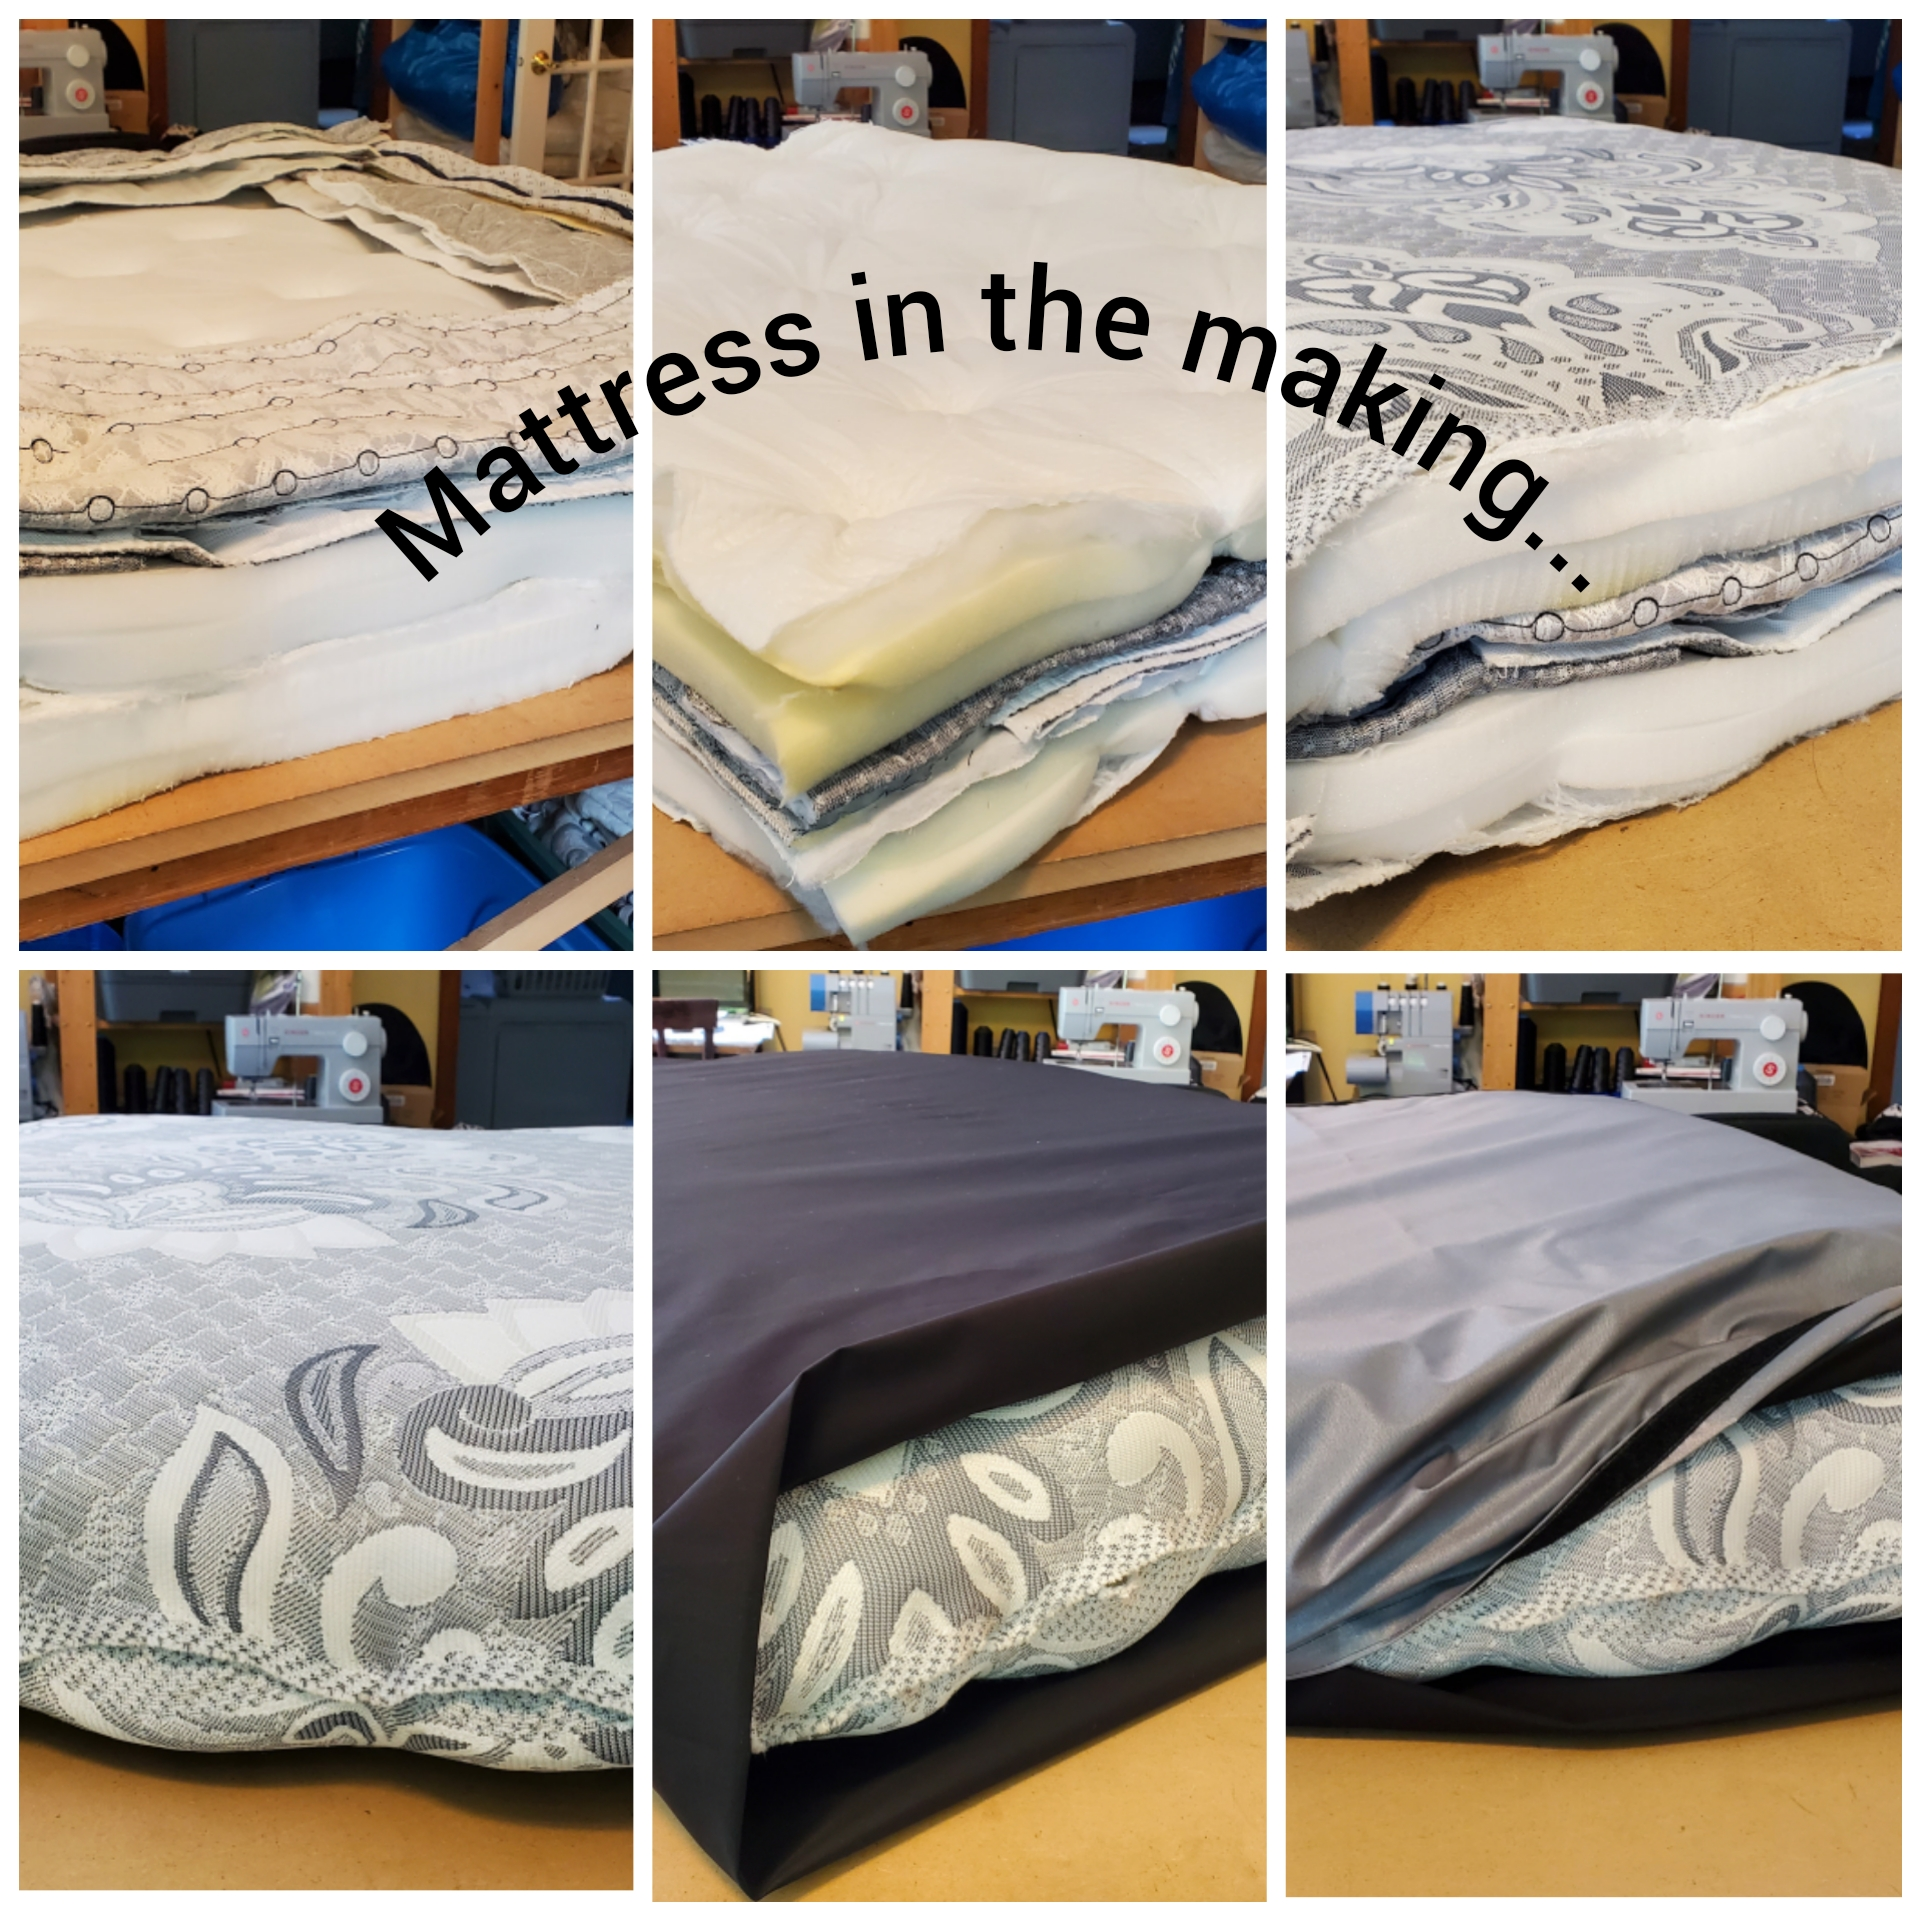 mattress in the making